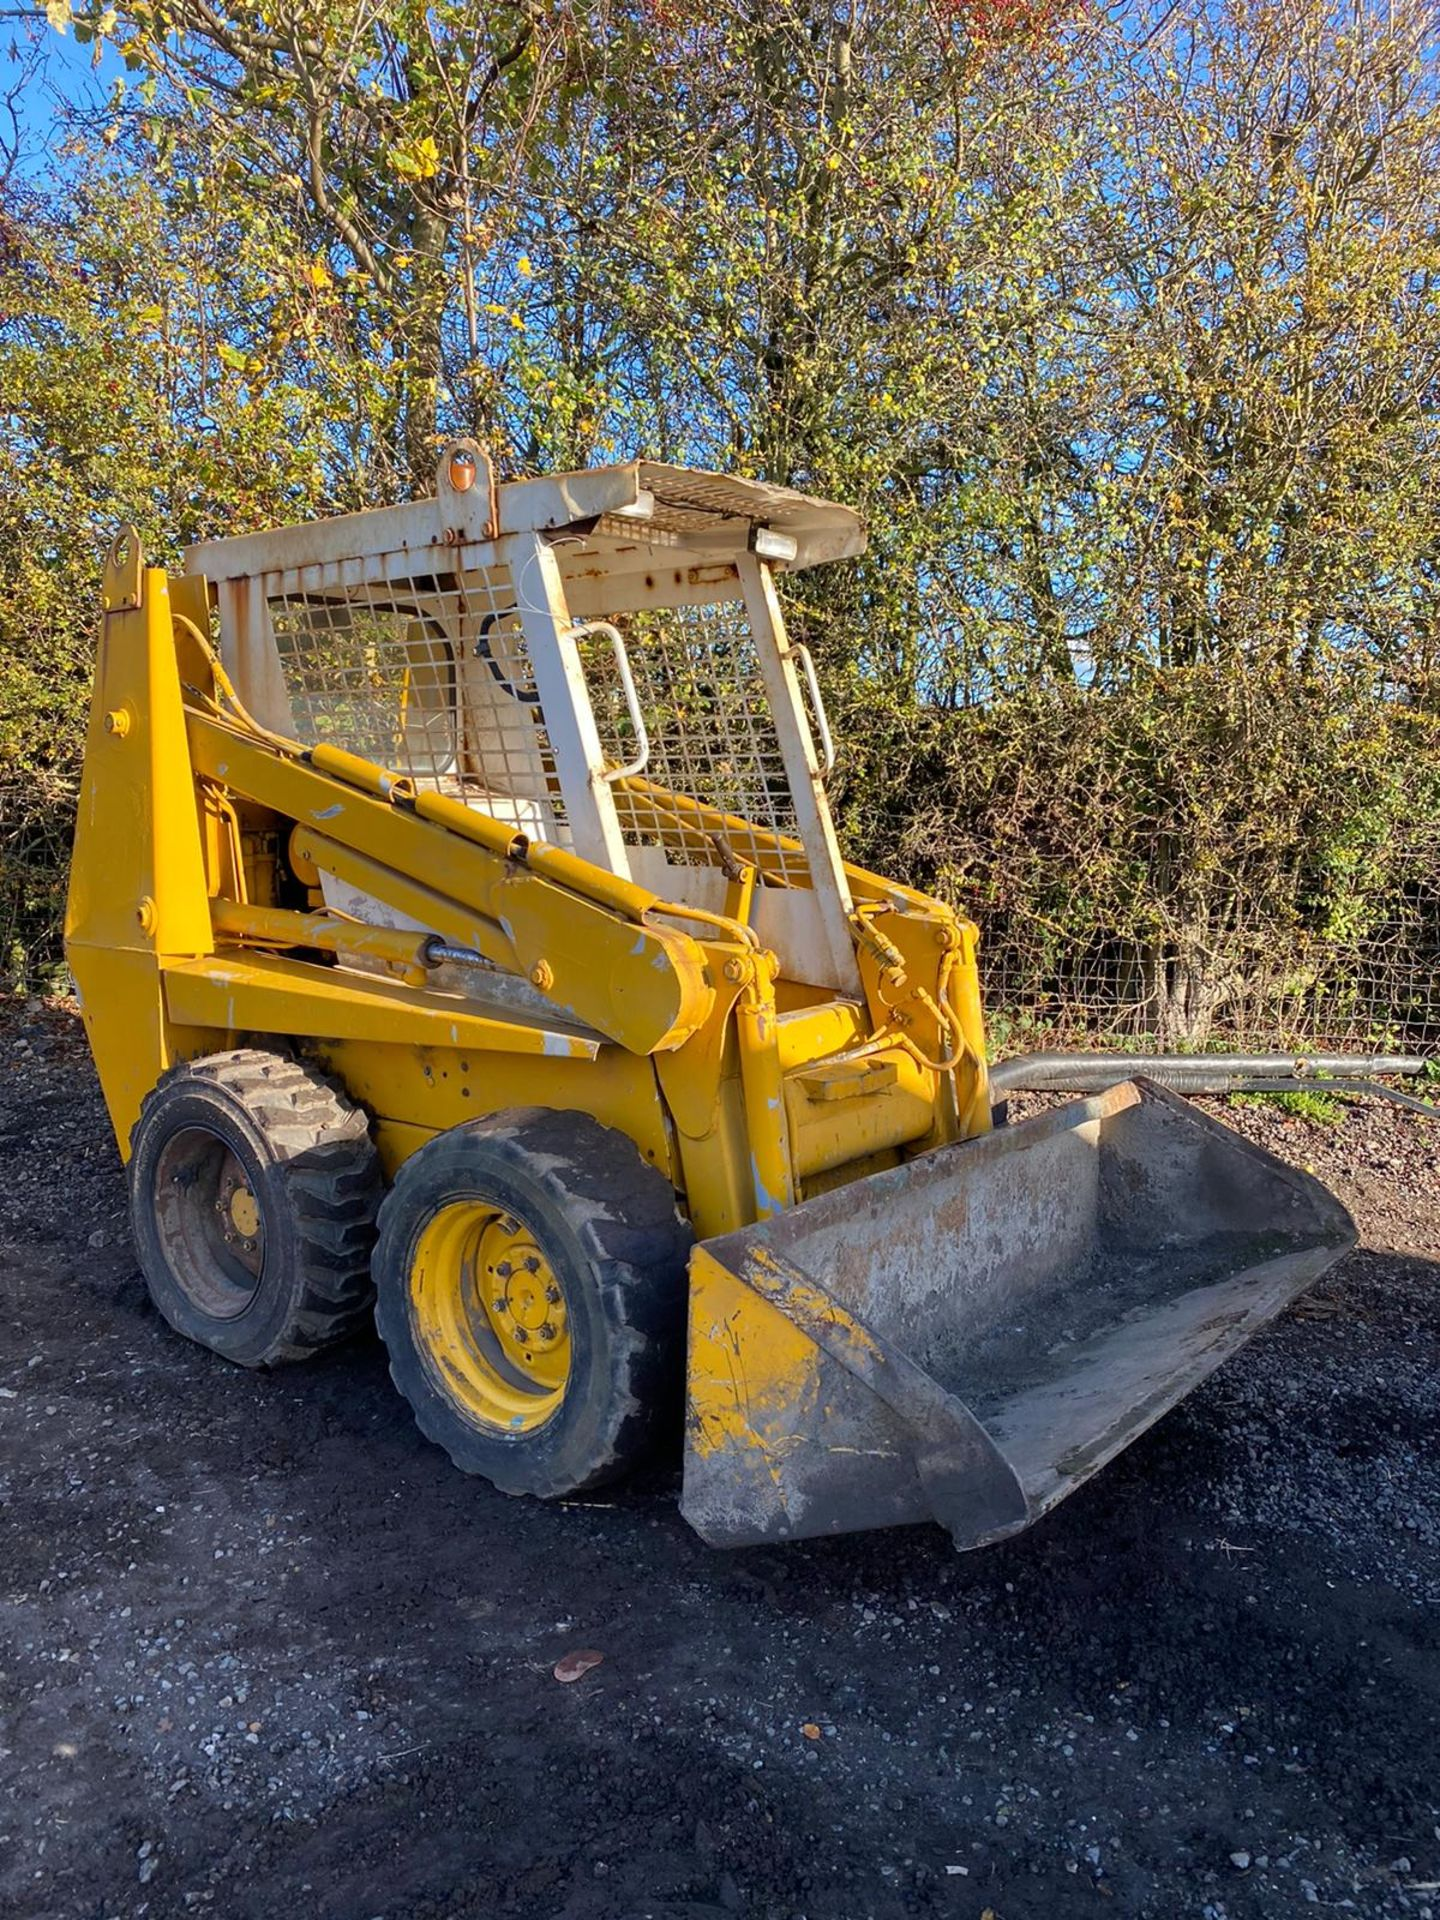 CASE 1840 SKID STEER LOADER, STARTS FIRST TURN OF THE KEY, RUNS, DRIVES AND LIFTS *PLUS VAT* - Image 7 of 9